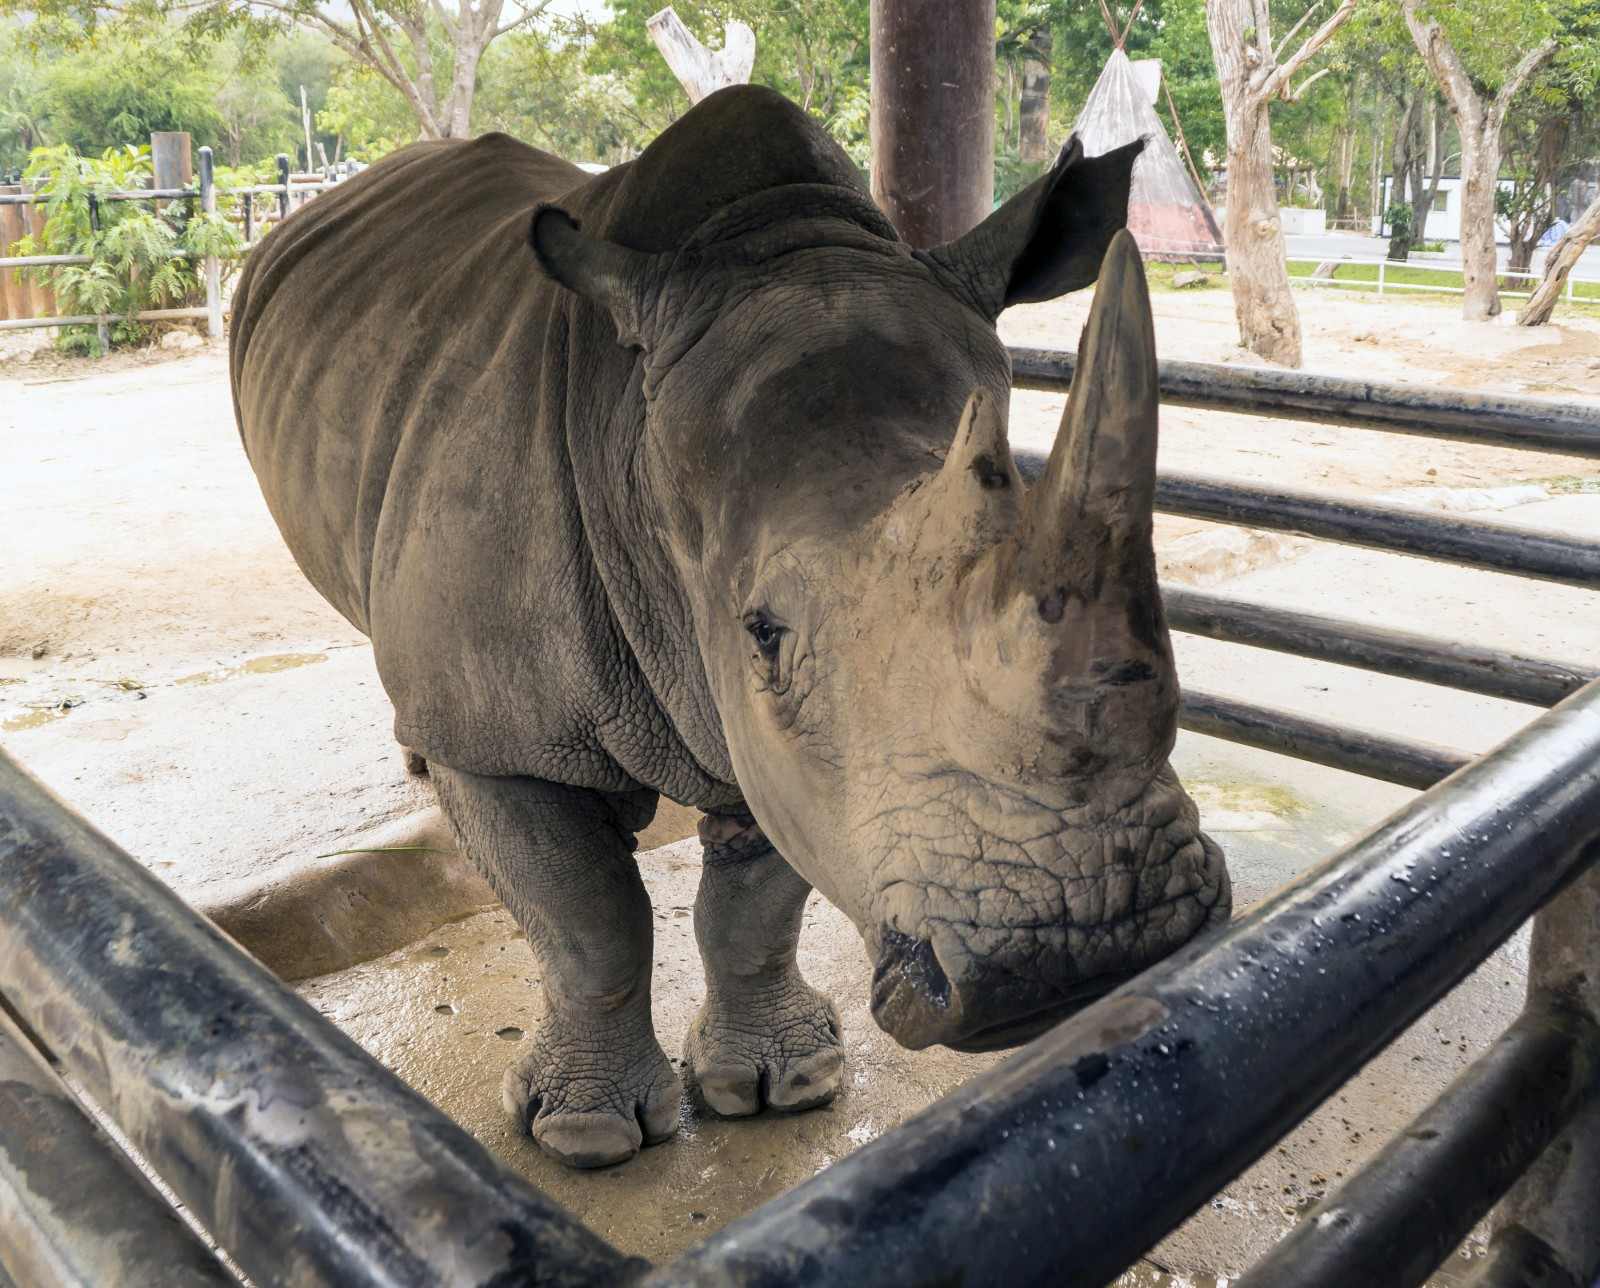 5@5: For Just $350k You Can Kill an Endangered Rhino